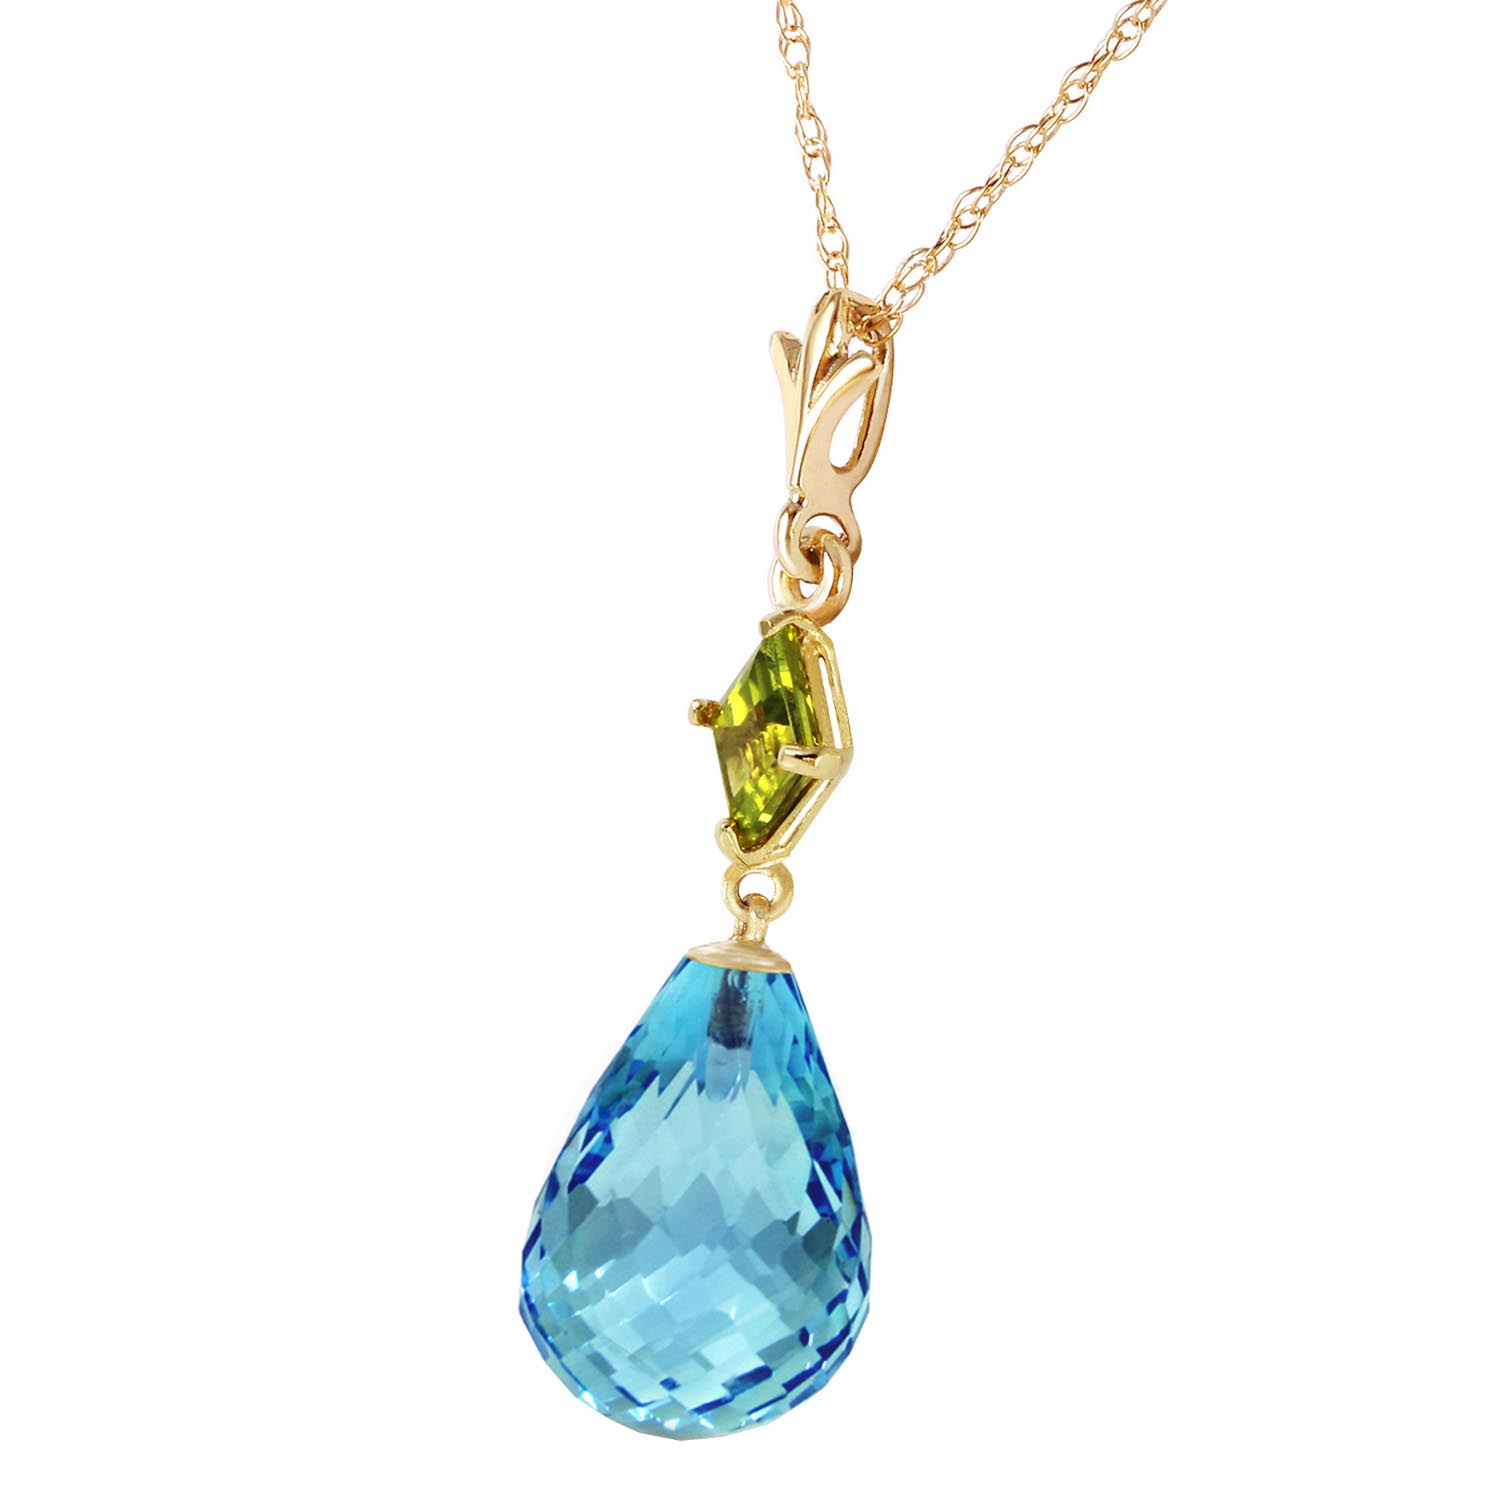 Blue Topaz and Peridot Pendant Necklace 5.5ctw in 14K Gold